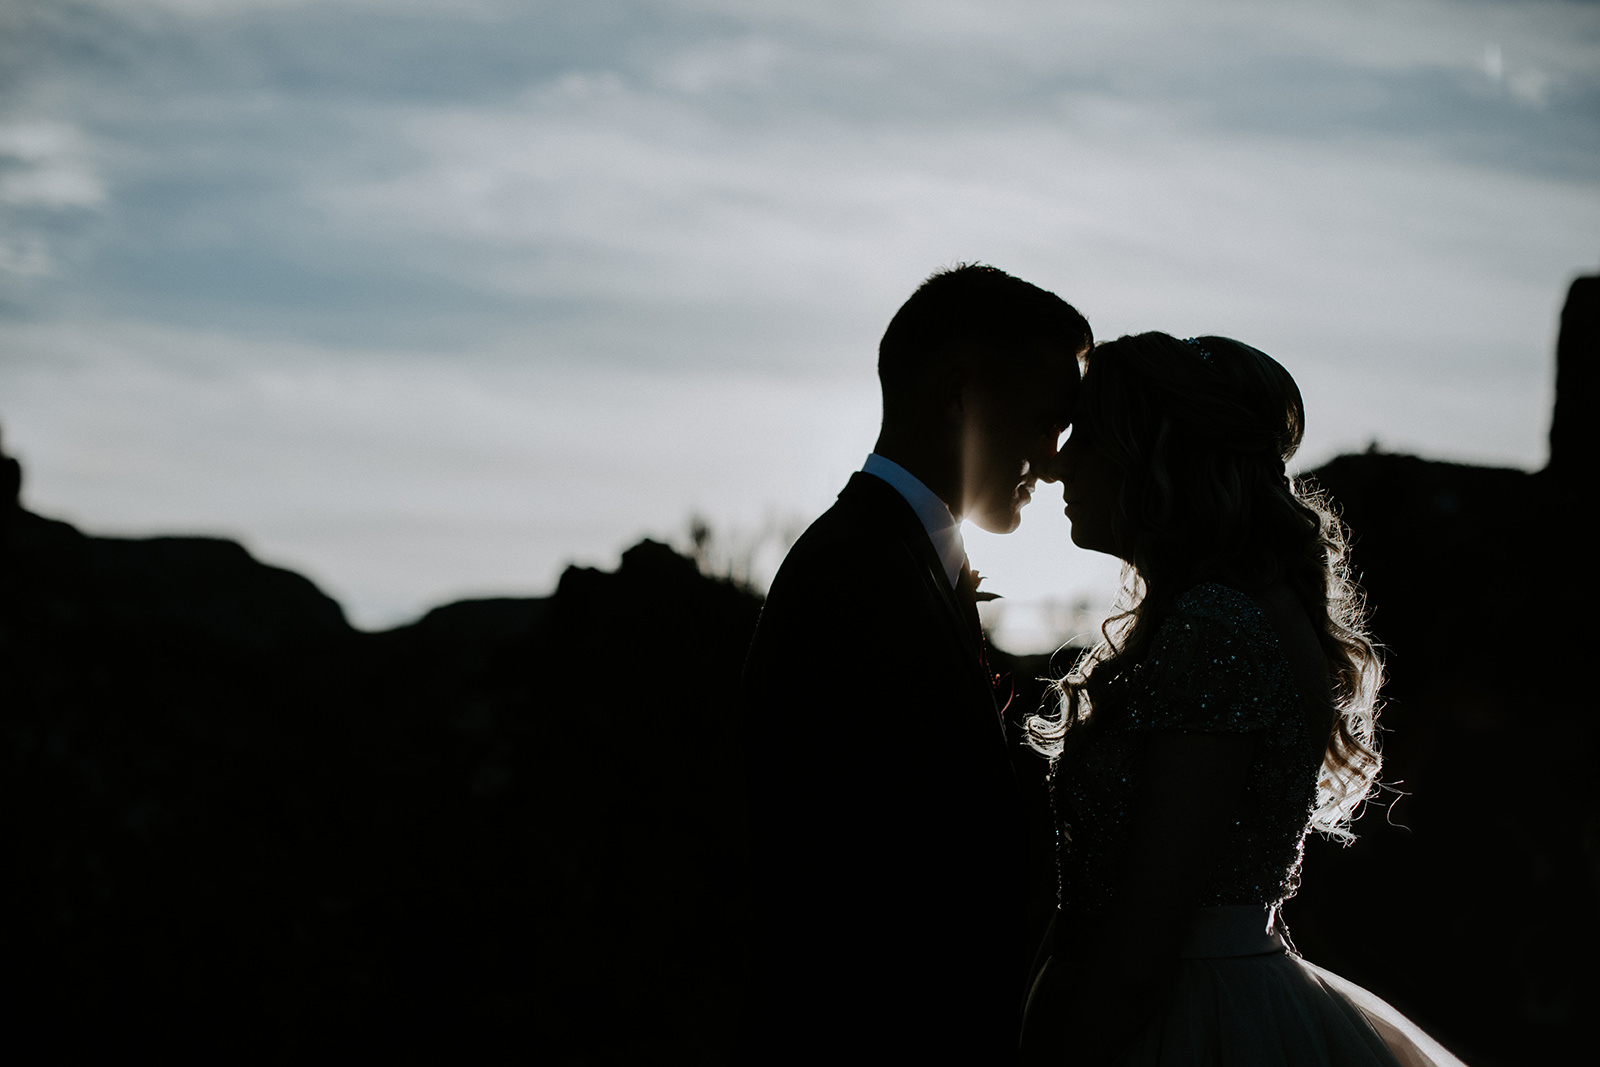 Silhoutte of groom and bride against cliffs in background with sun behind them